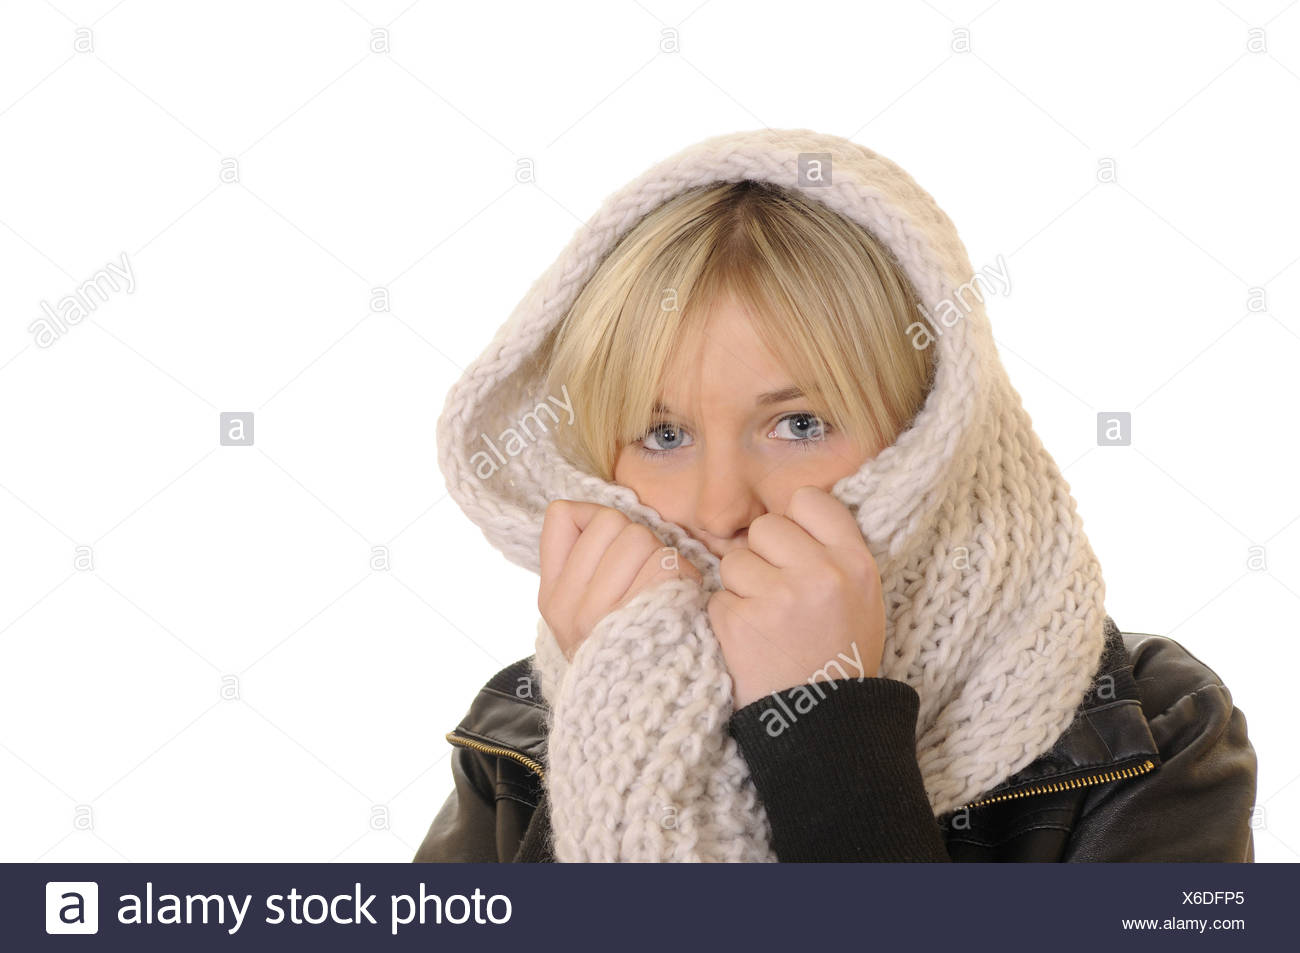 young woman freezes - Stock Image